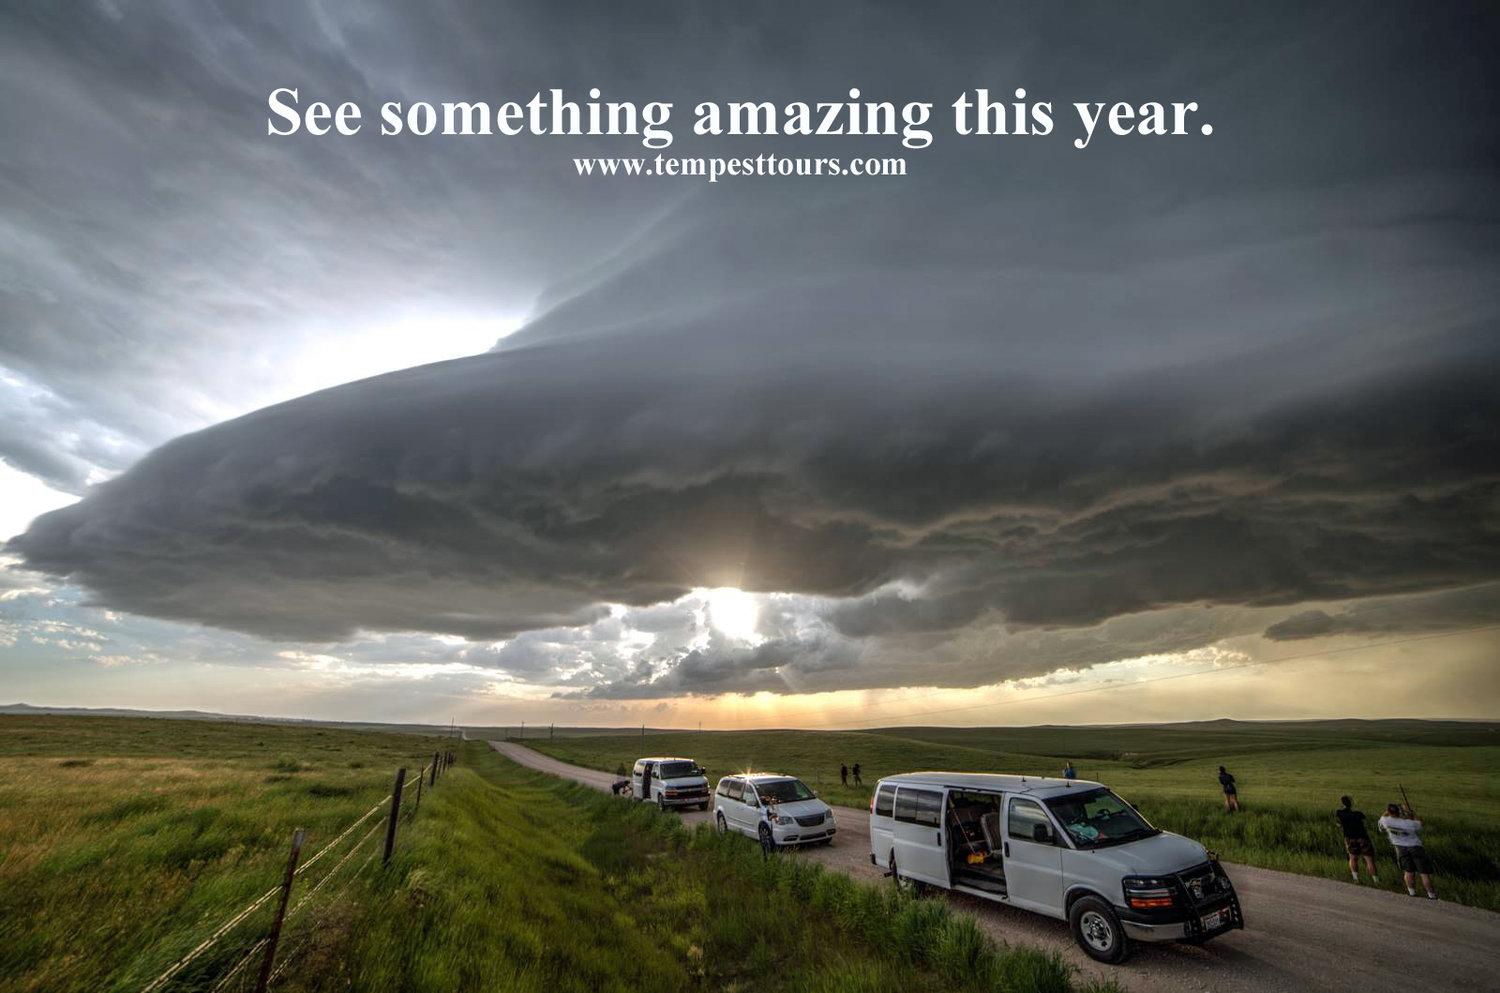 Supercell-over-vans-Tempest-Tours-storm-chasing.jpg